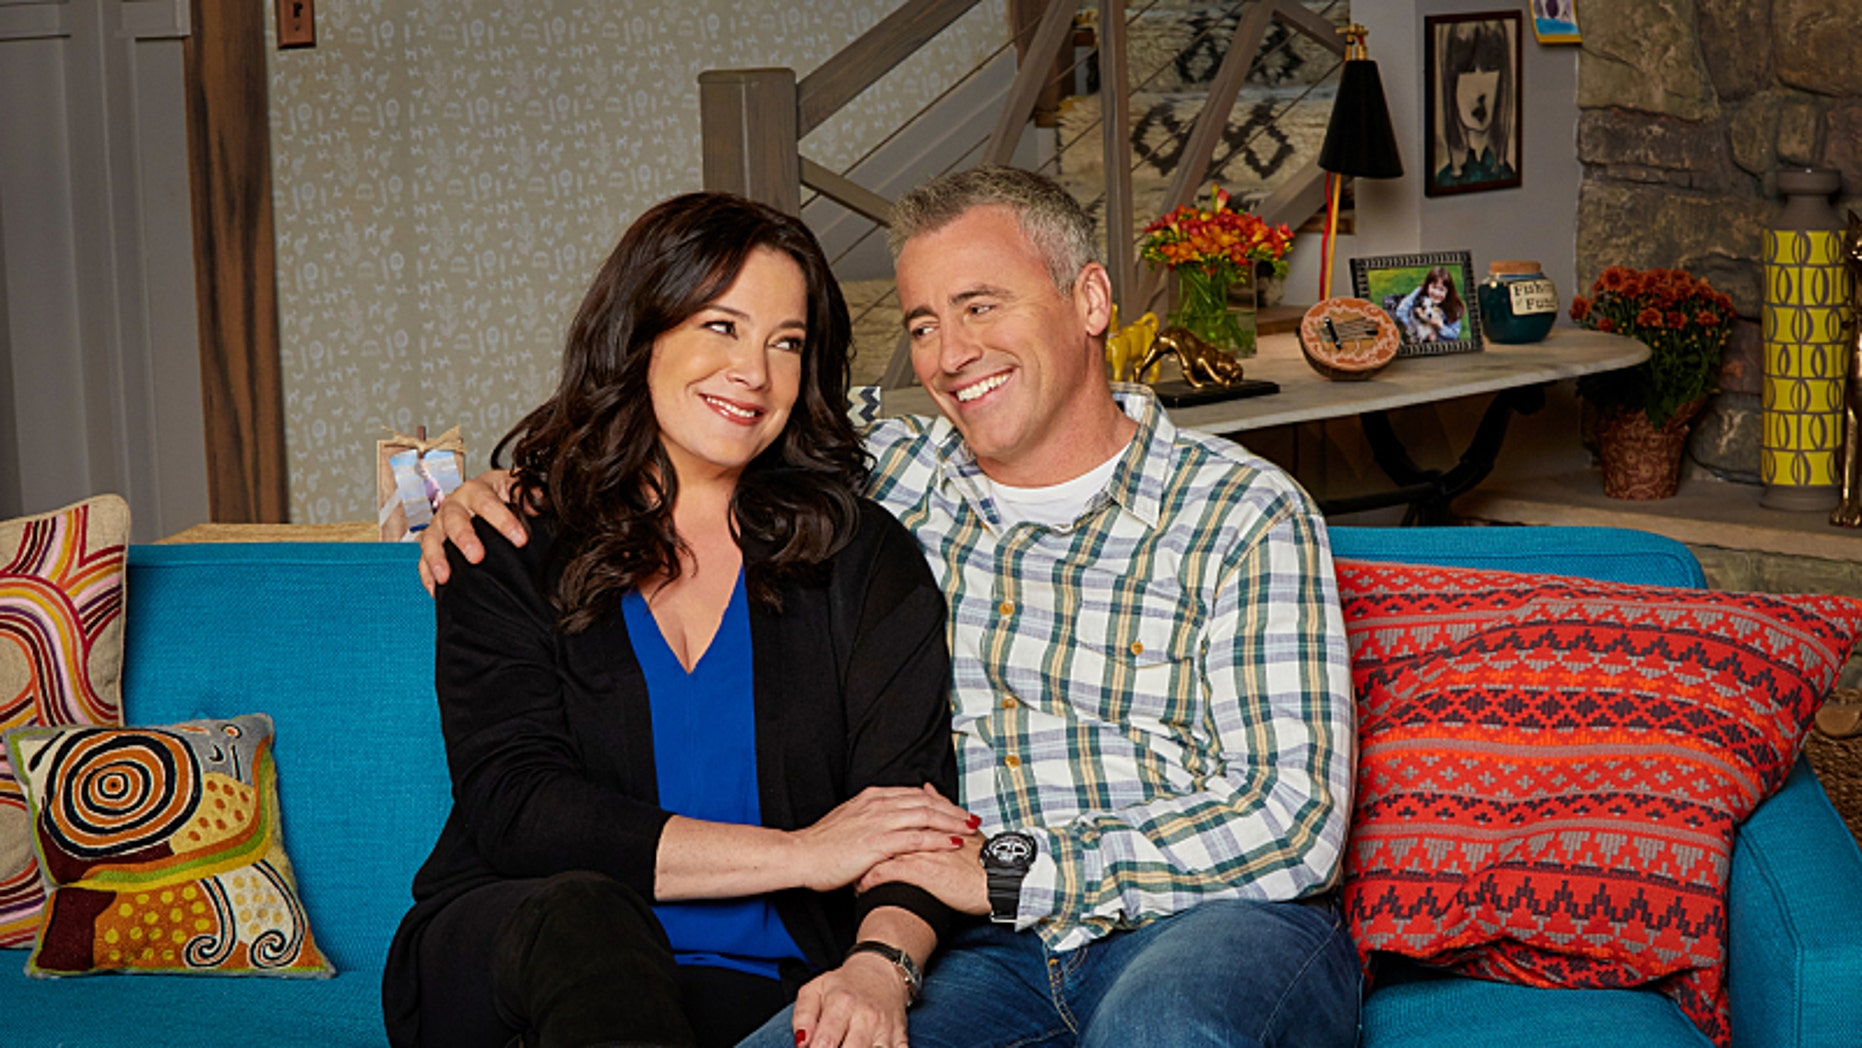 Liza Snyder as Andi and Matt LeBlanc of the CBS series MAN WITH A PLAN on the CBS Television Network